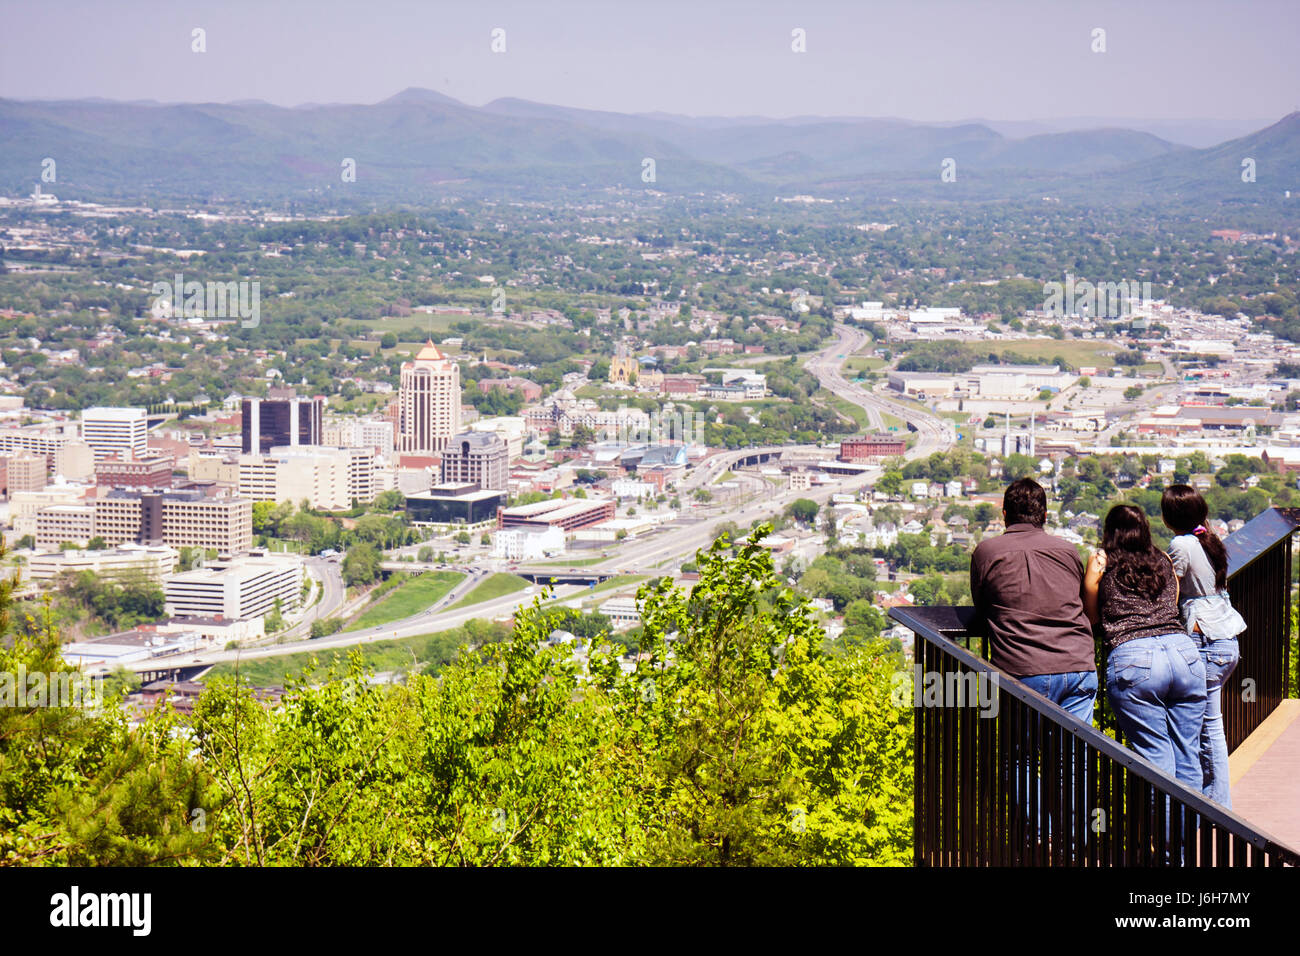 Virginia Roanoke Mill Mountain Overlook view downtown city valley Allegheny Mountains Blue Ridge Appalachian Hispanic - Stock Image